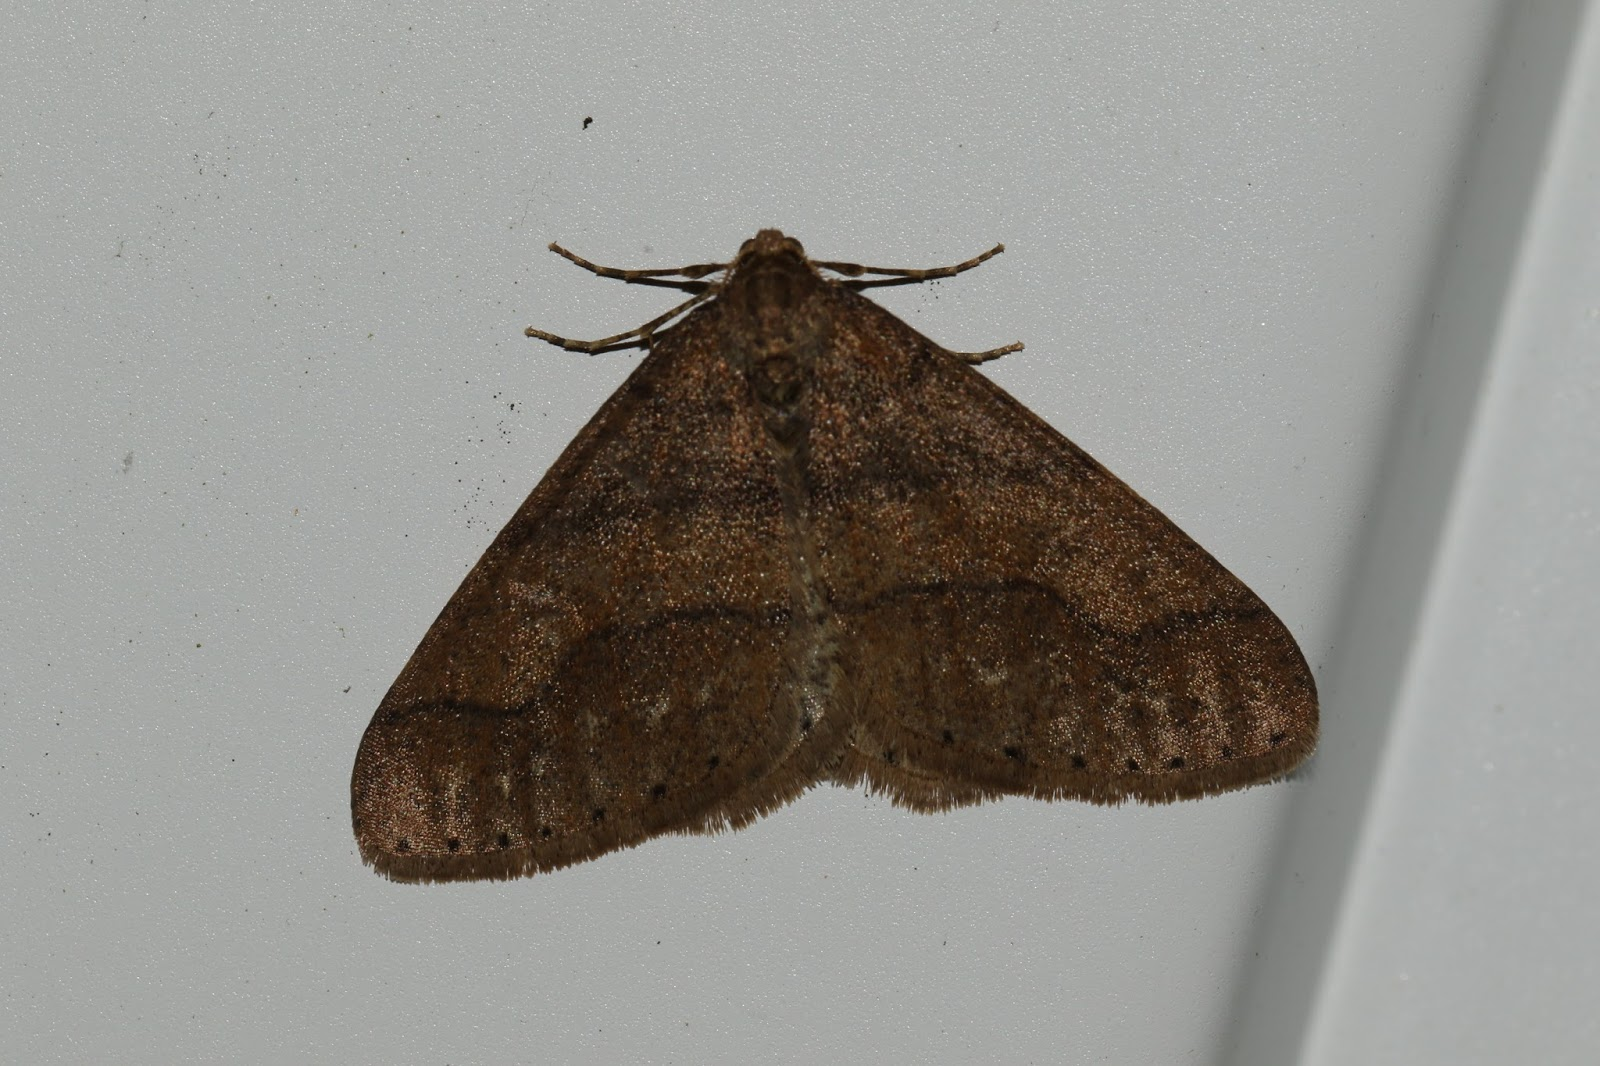 First Moth Of The Year On Garage Door Thing And Still At Lunch Time Despite Snow